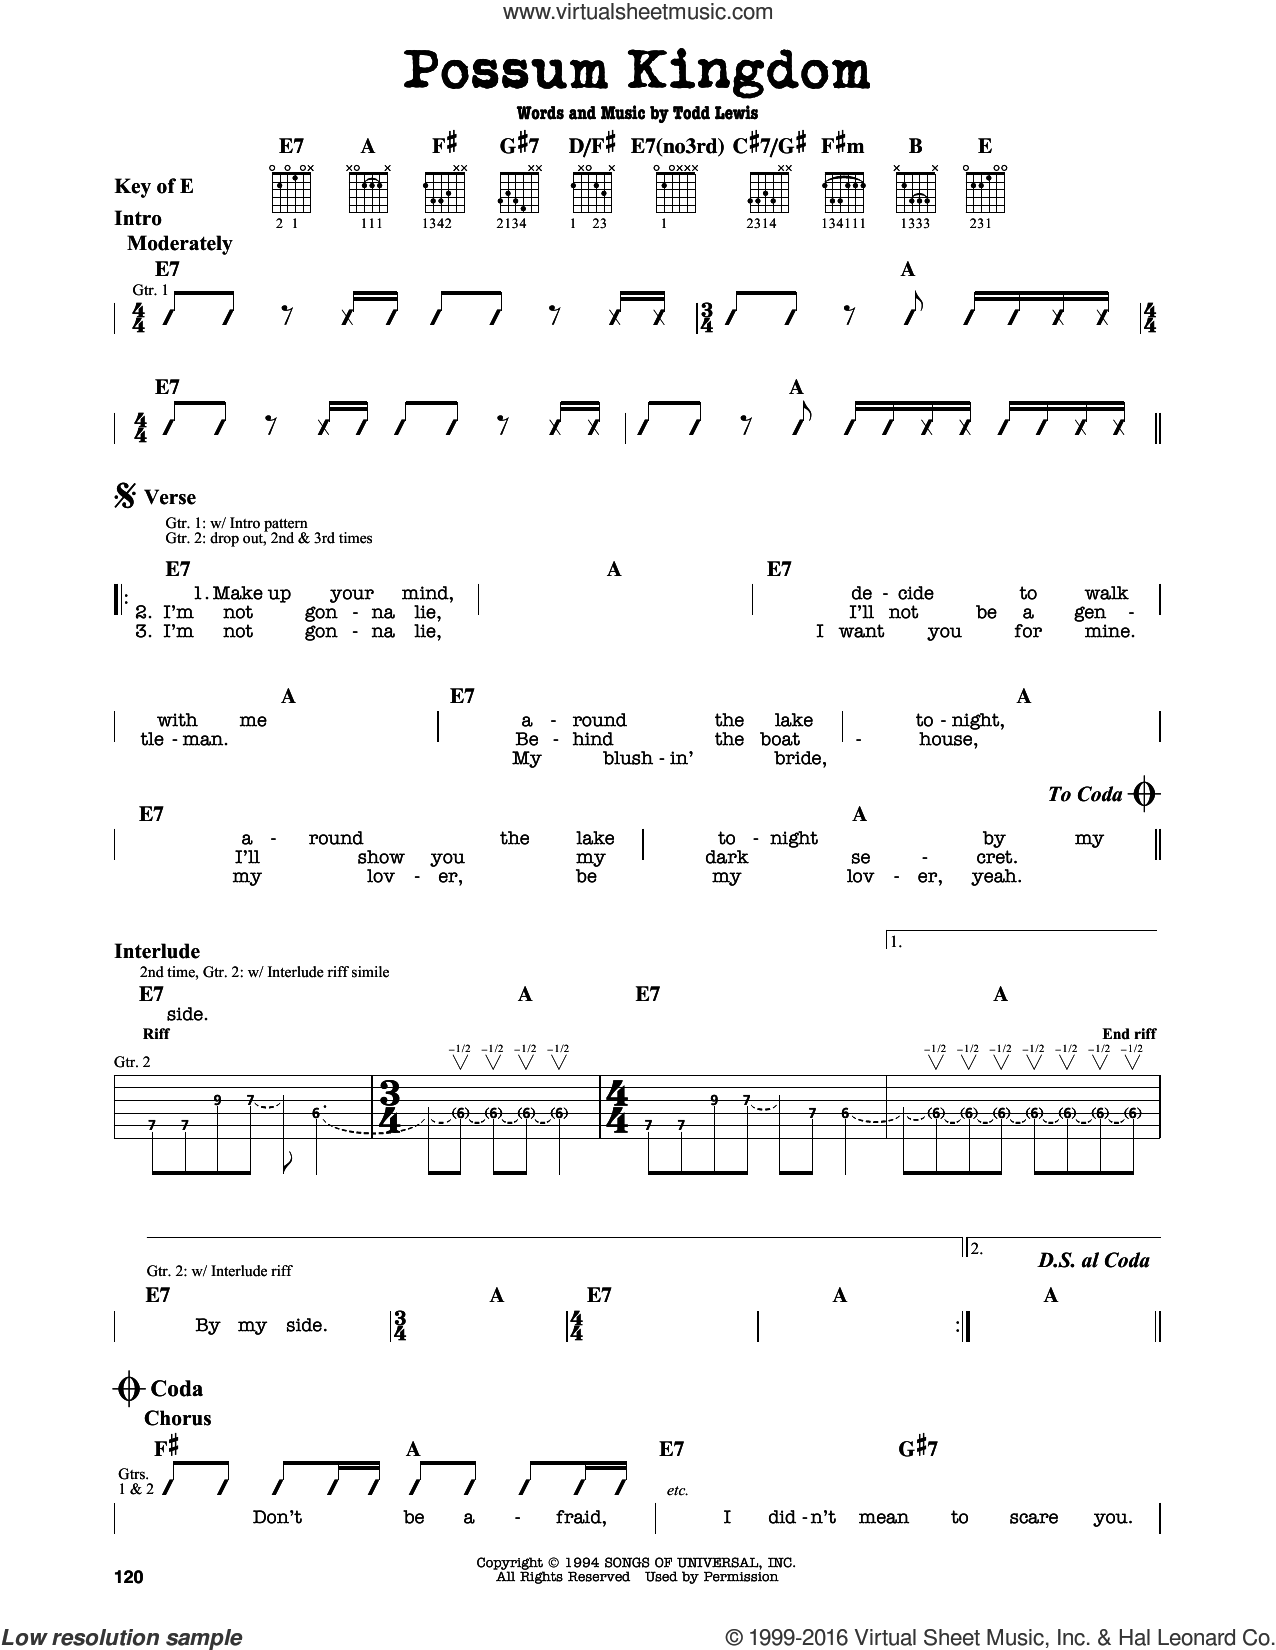 Possum Kingdom sheet music for guitar solo (lead sheet) by Todd Lewis. Score Image Preview.